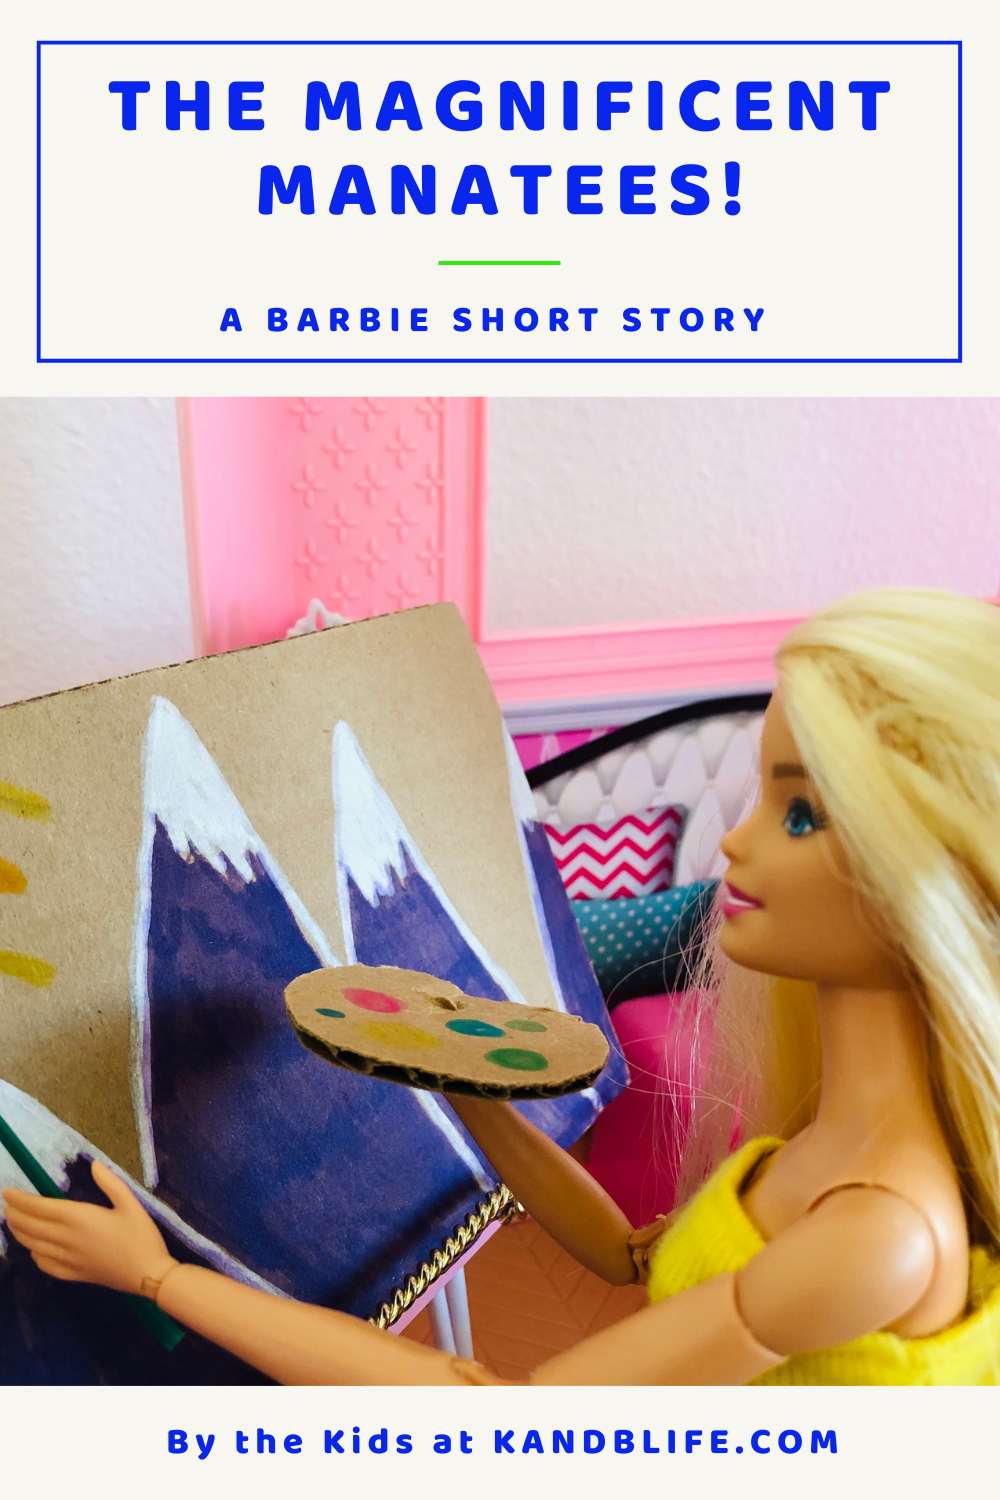 A Barbie doll painting mountains for a short story.